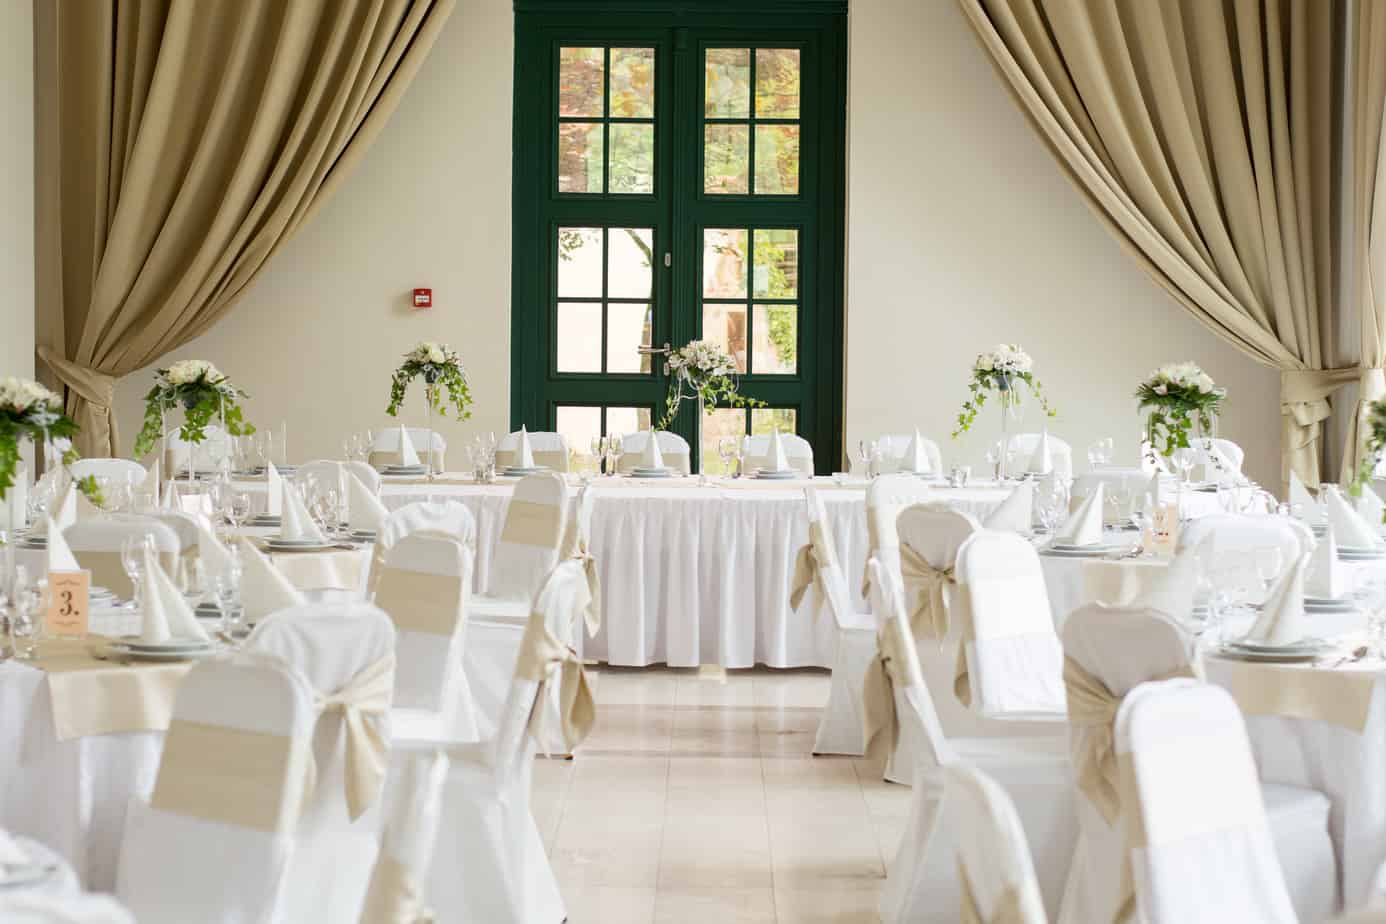 An Easy Table Setting Guide for Formal Events